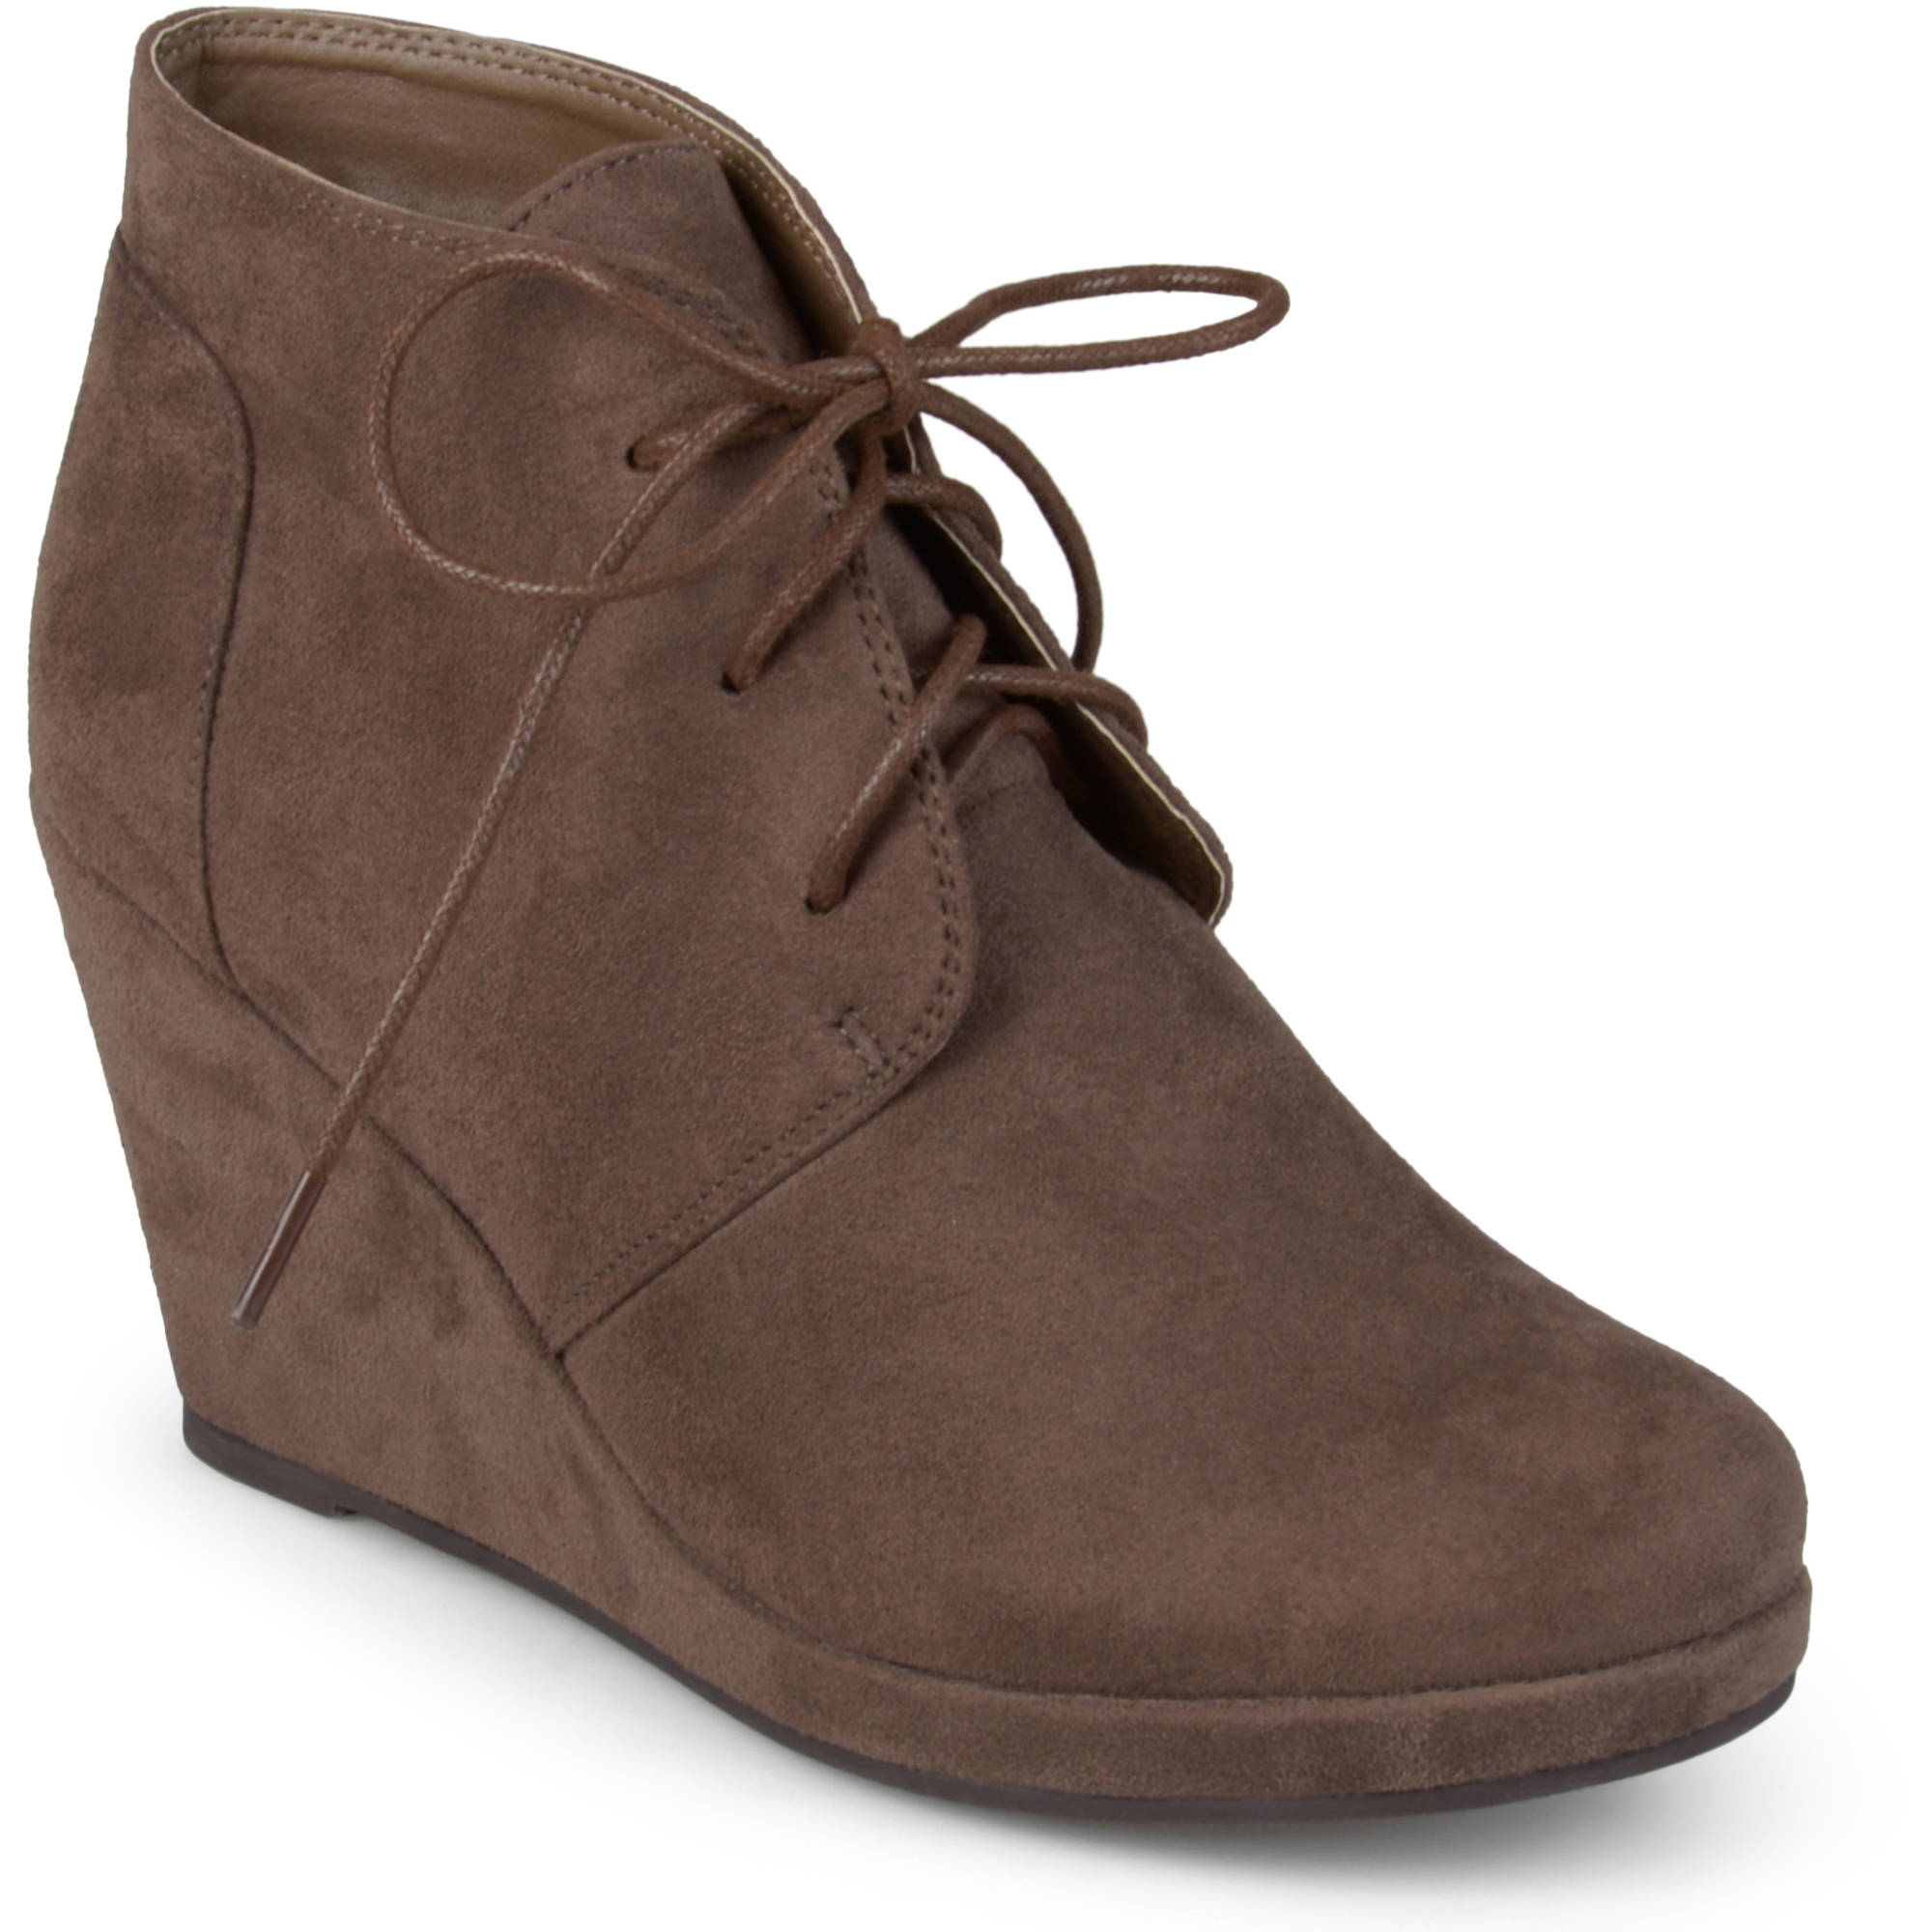 Brinley Co. Women's Wedge Faux Suede Booties